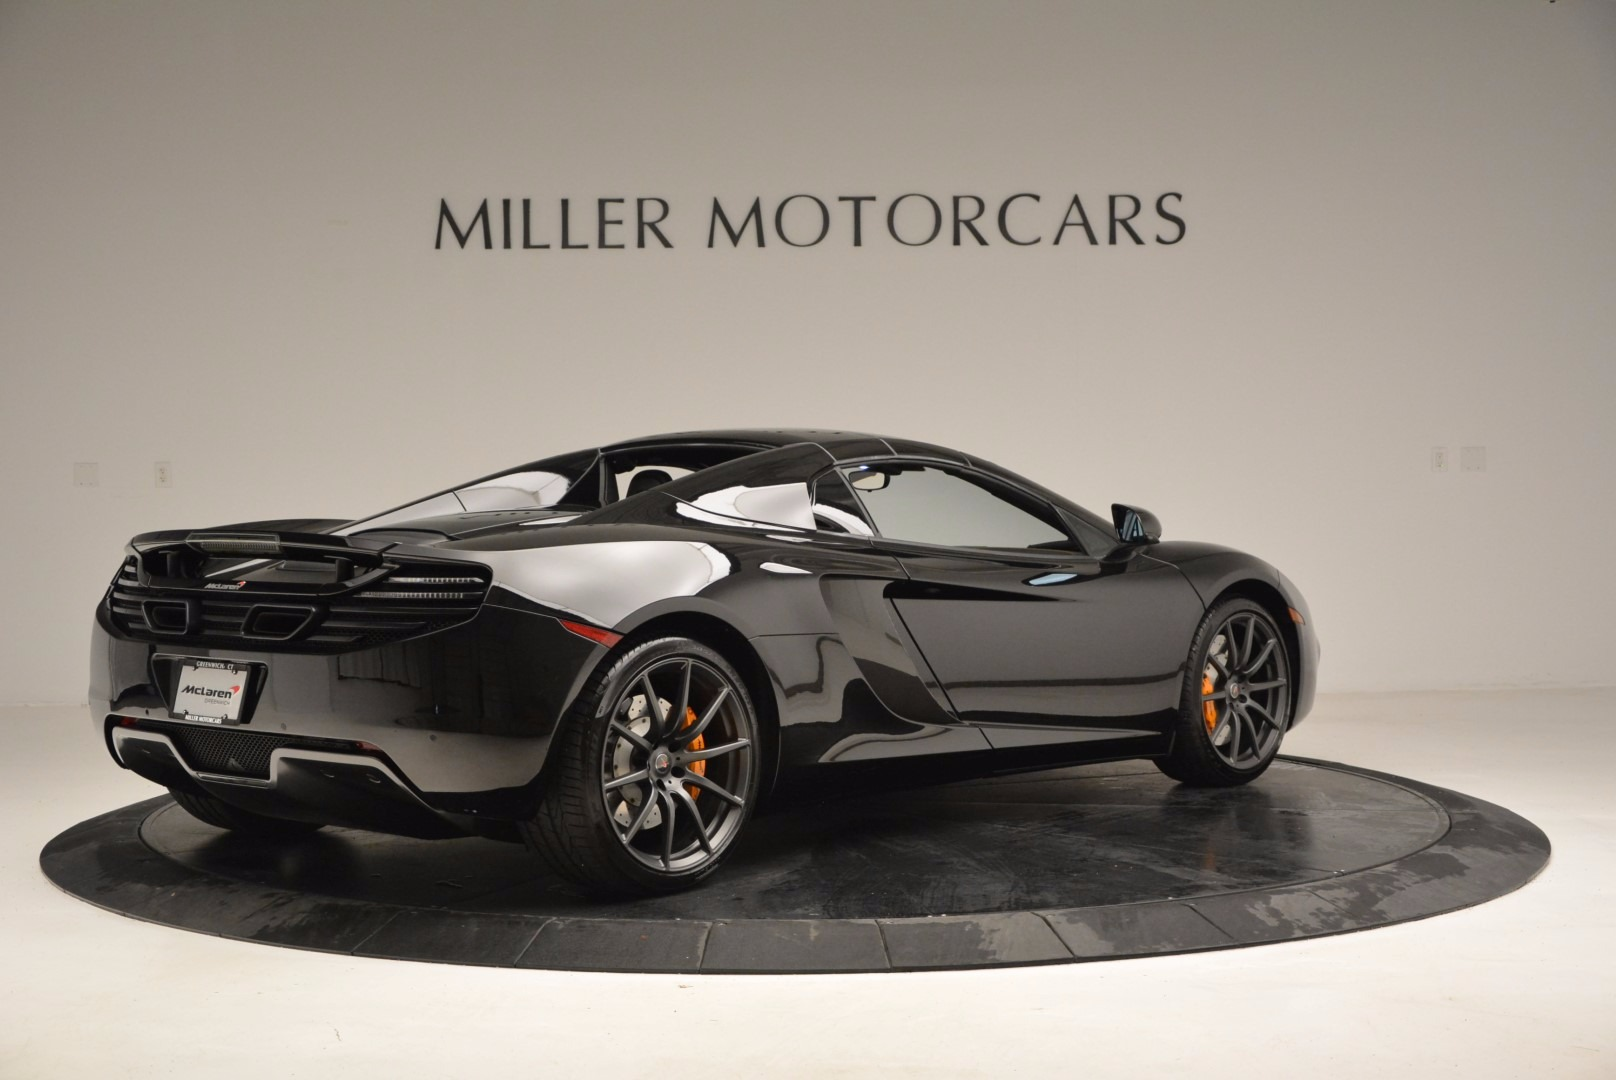 Used 2013 McLaren 12C Spider  For Sale In Greenwich, CT. Alfa Romeo of Greenwich, 3093 973_p19